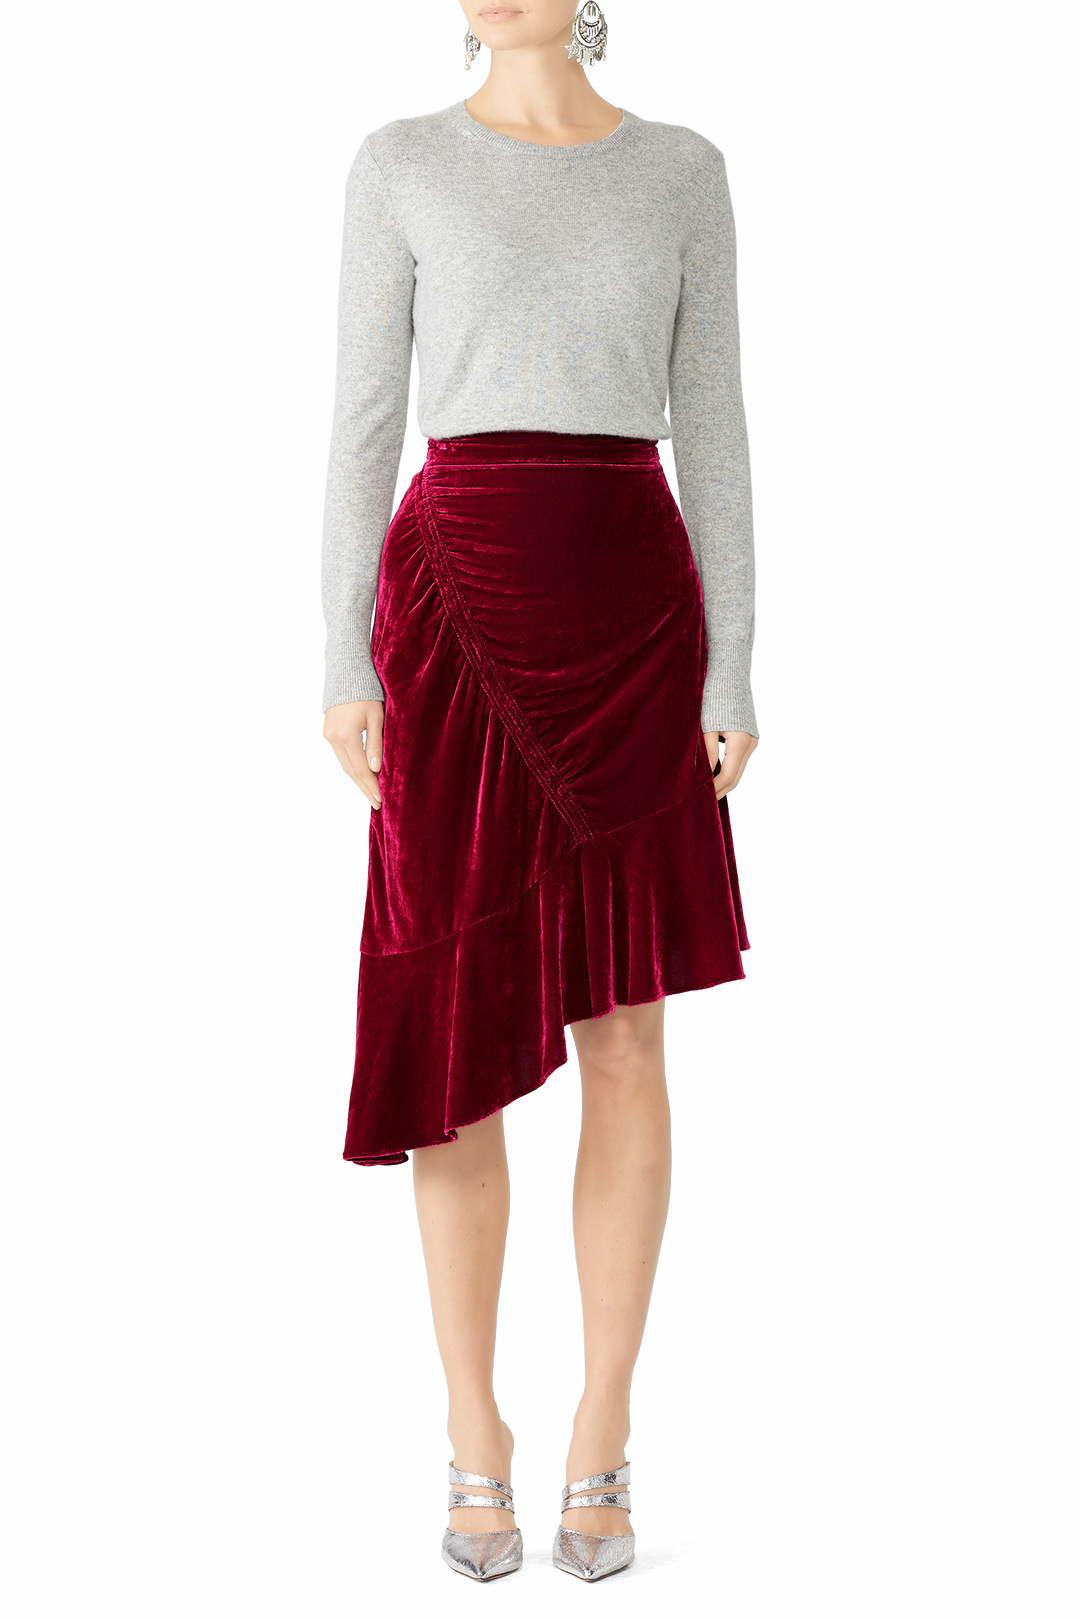 Parker Astrid Velvet Skirt - I LOVEEEEE this skirt. It's comfortable and high waisted. Great for eating a lot lol.